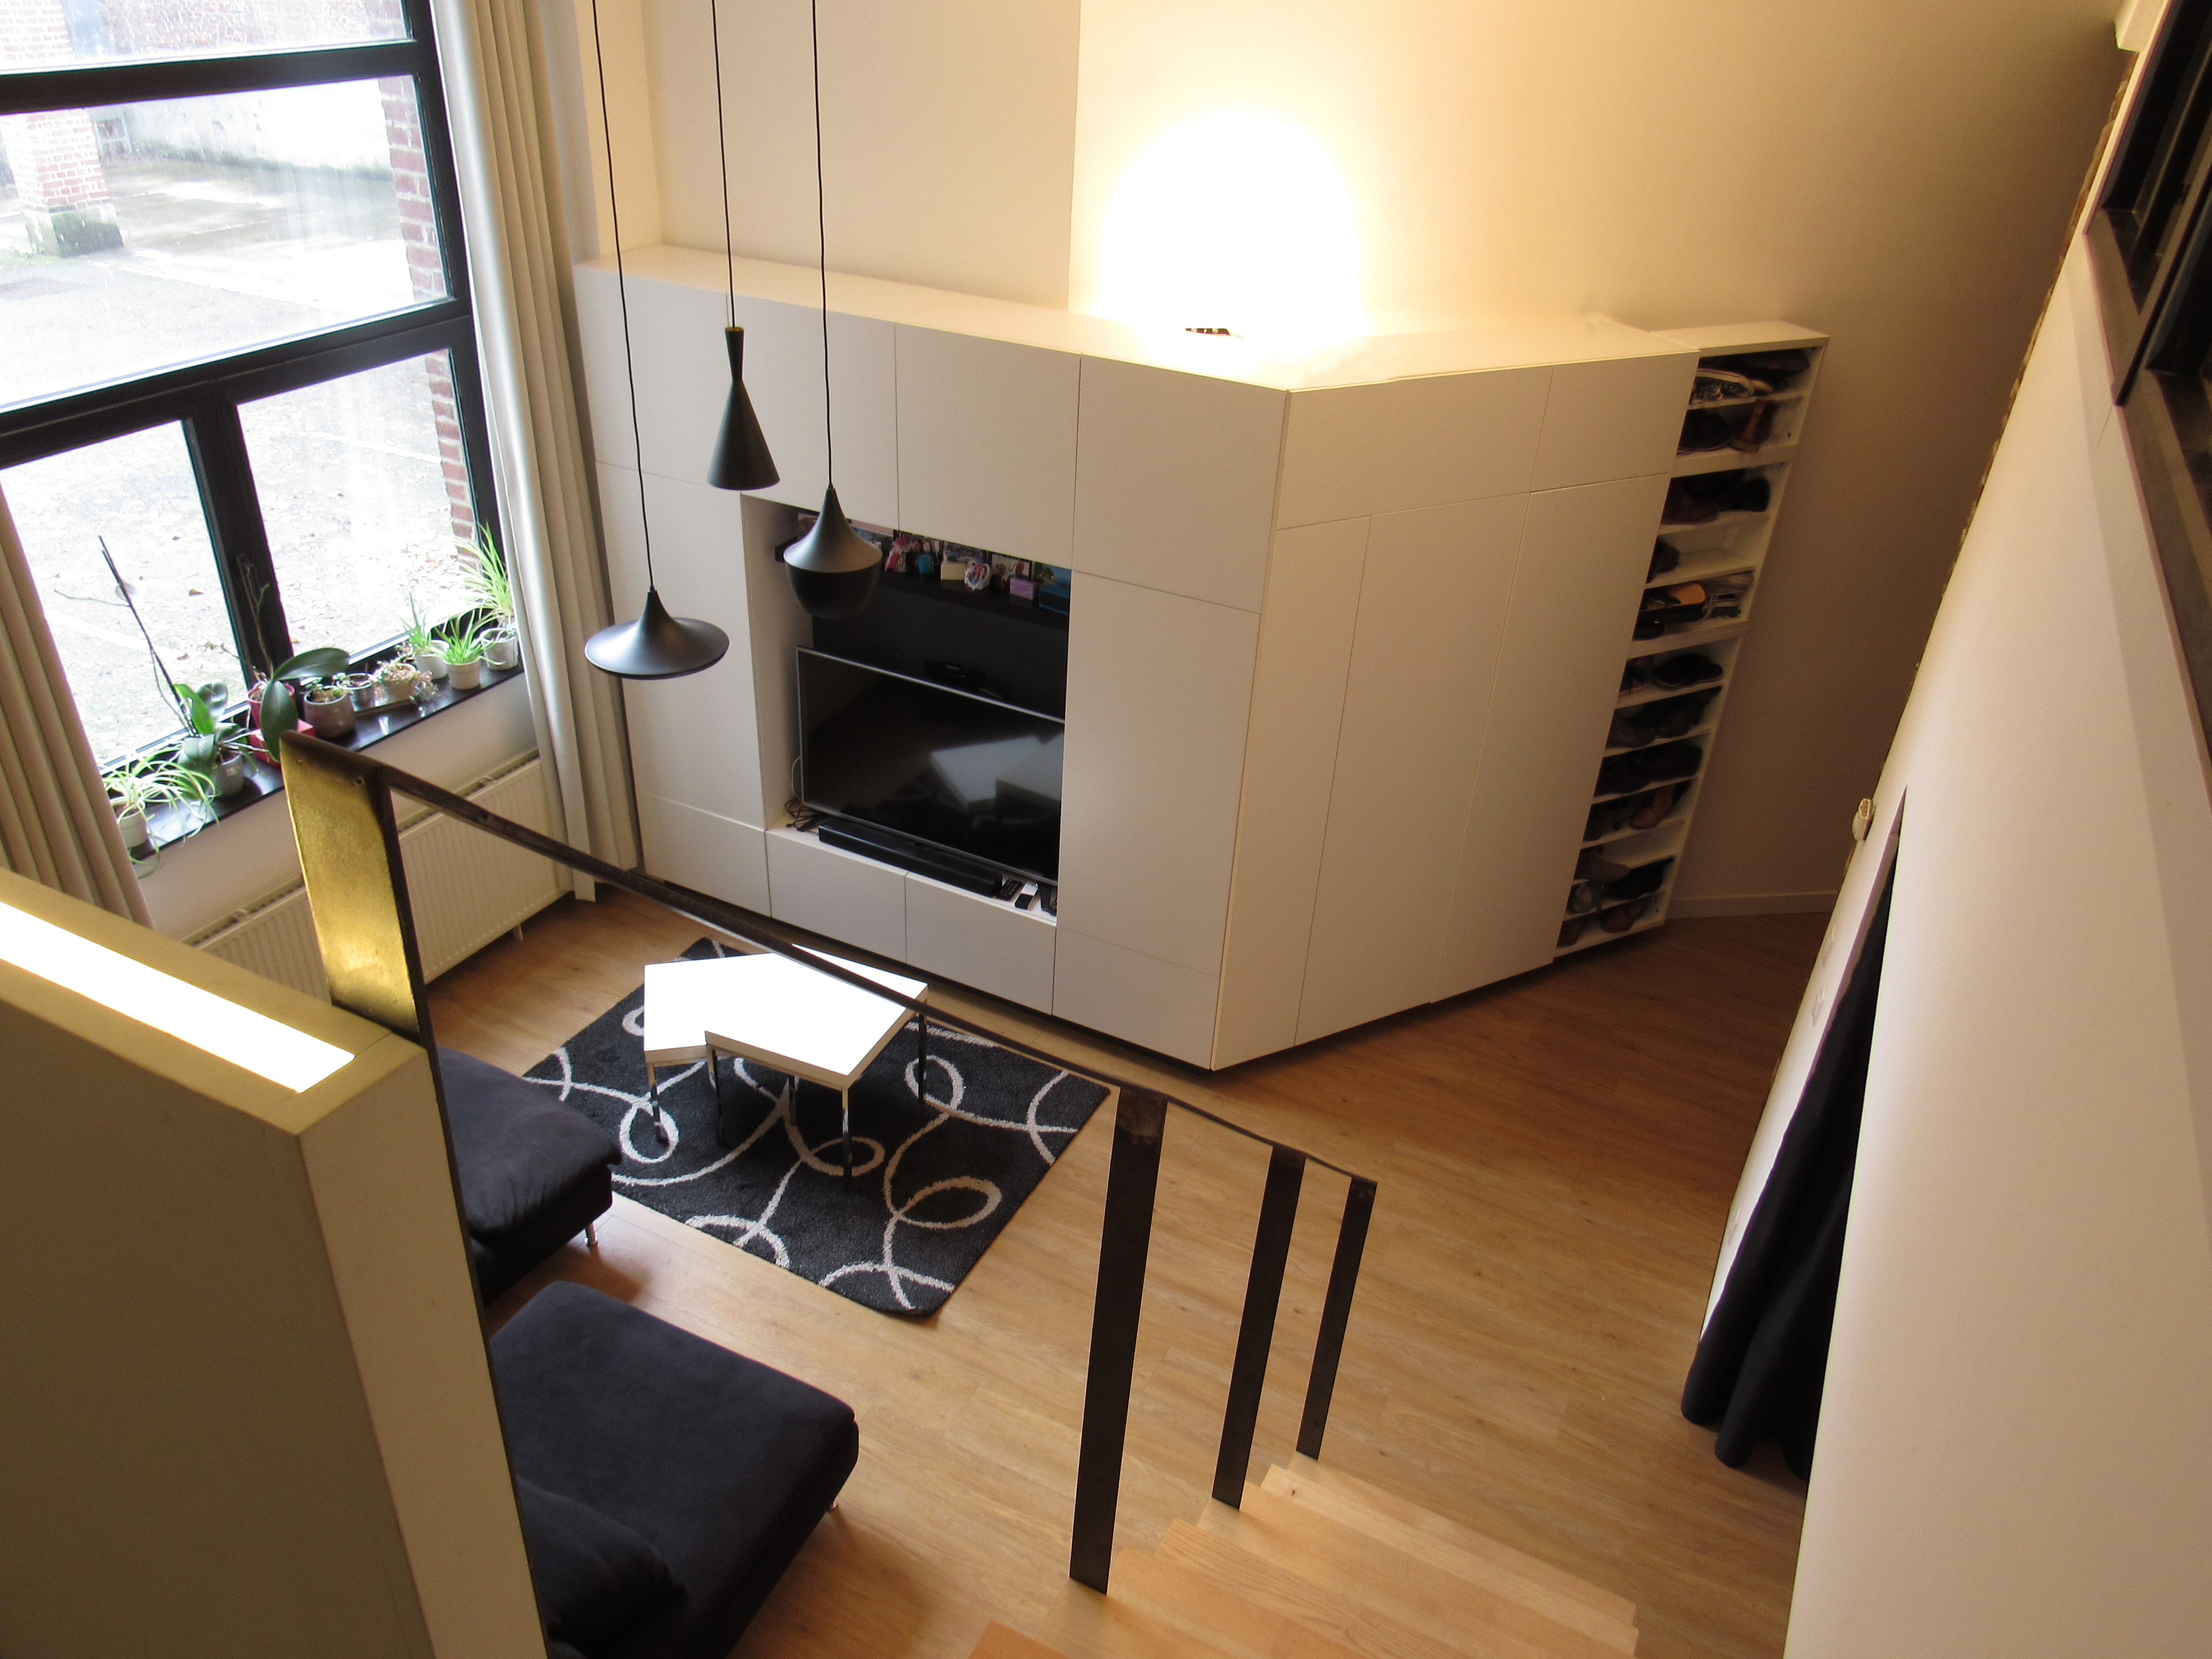 Loft Amenagement Interieur Salon Meuble Tv Dressing Sur Mesure L D Interieur